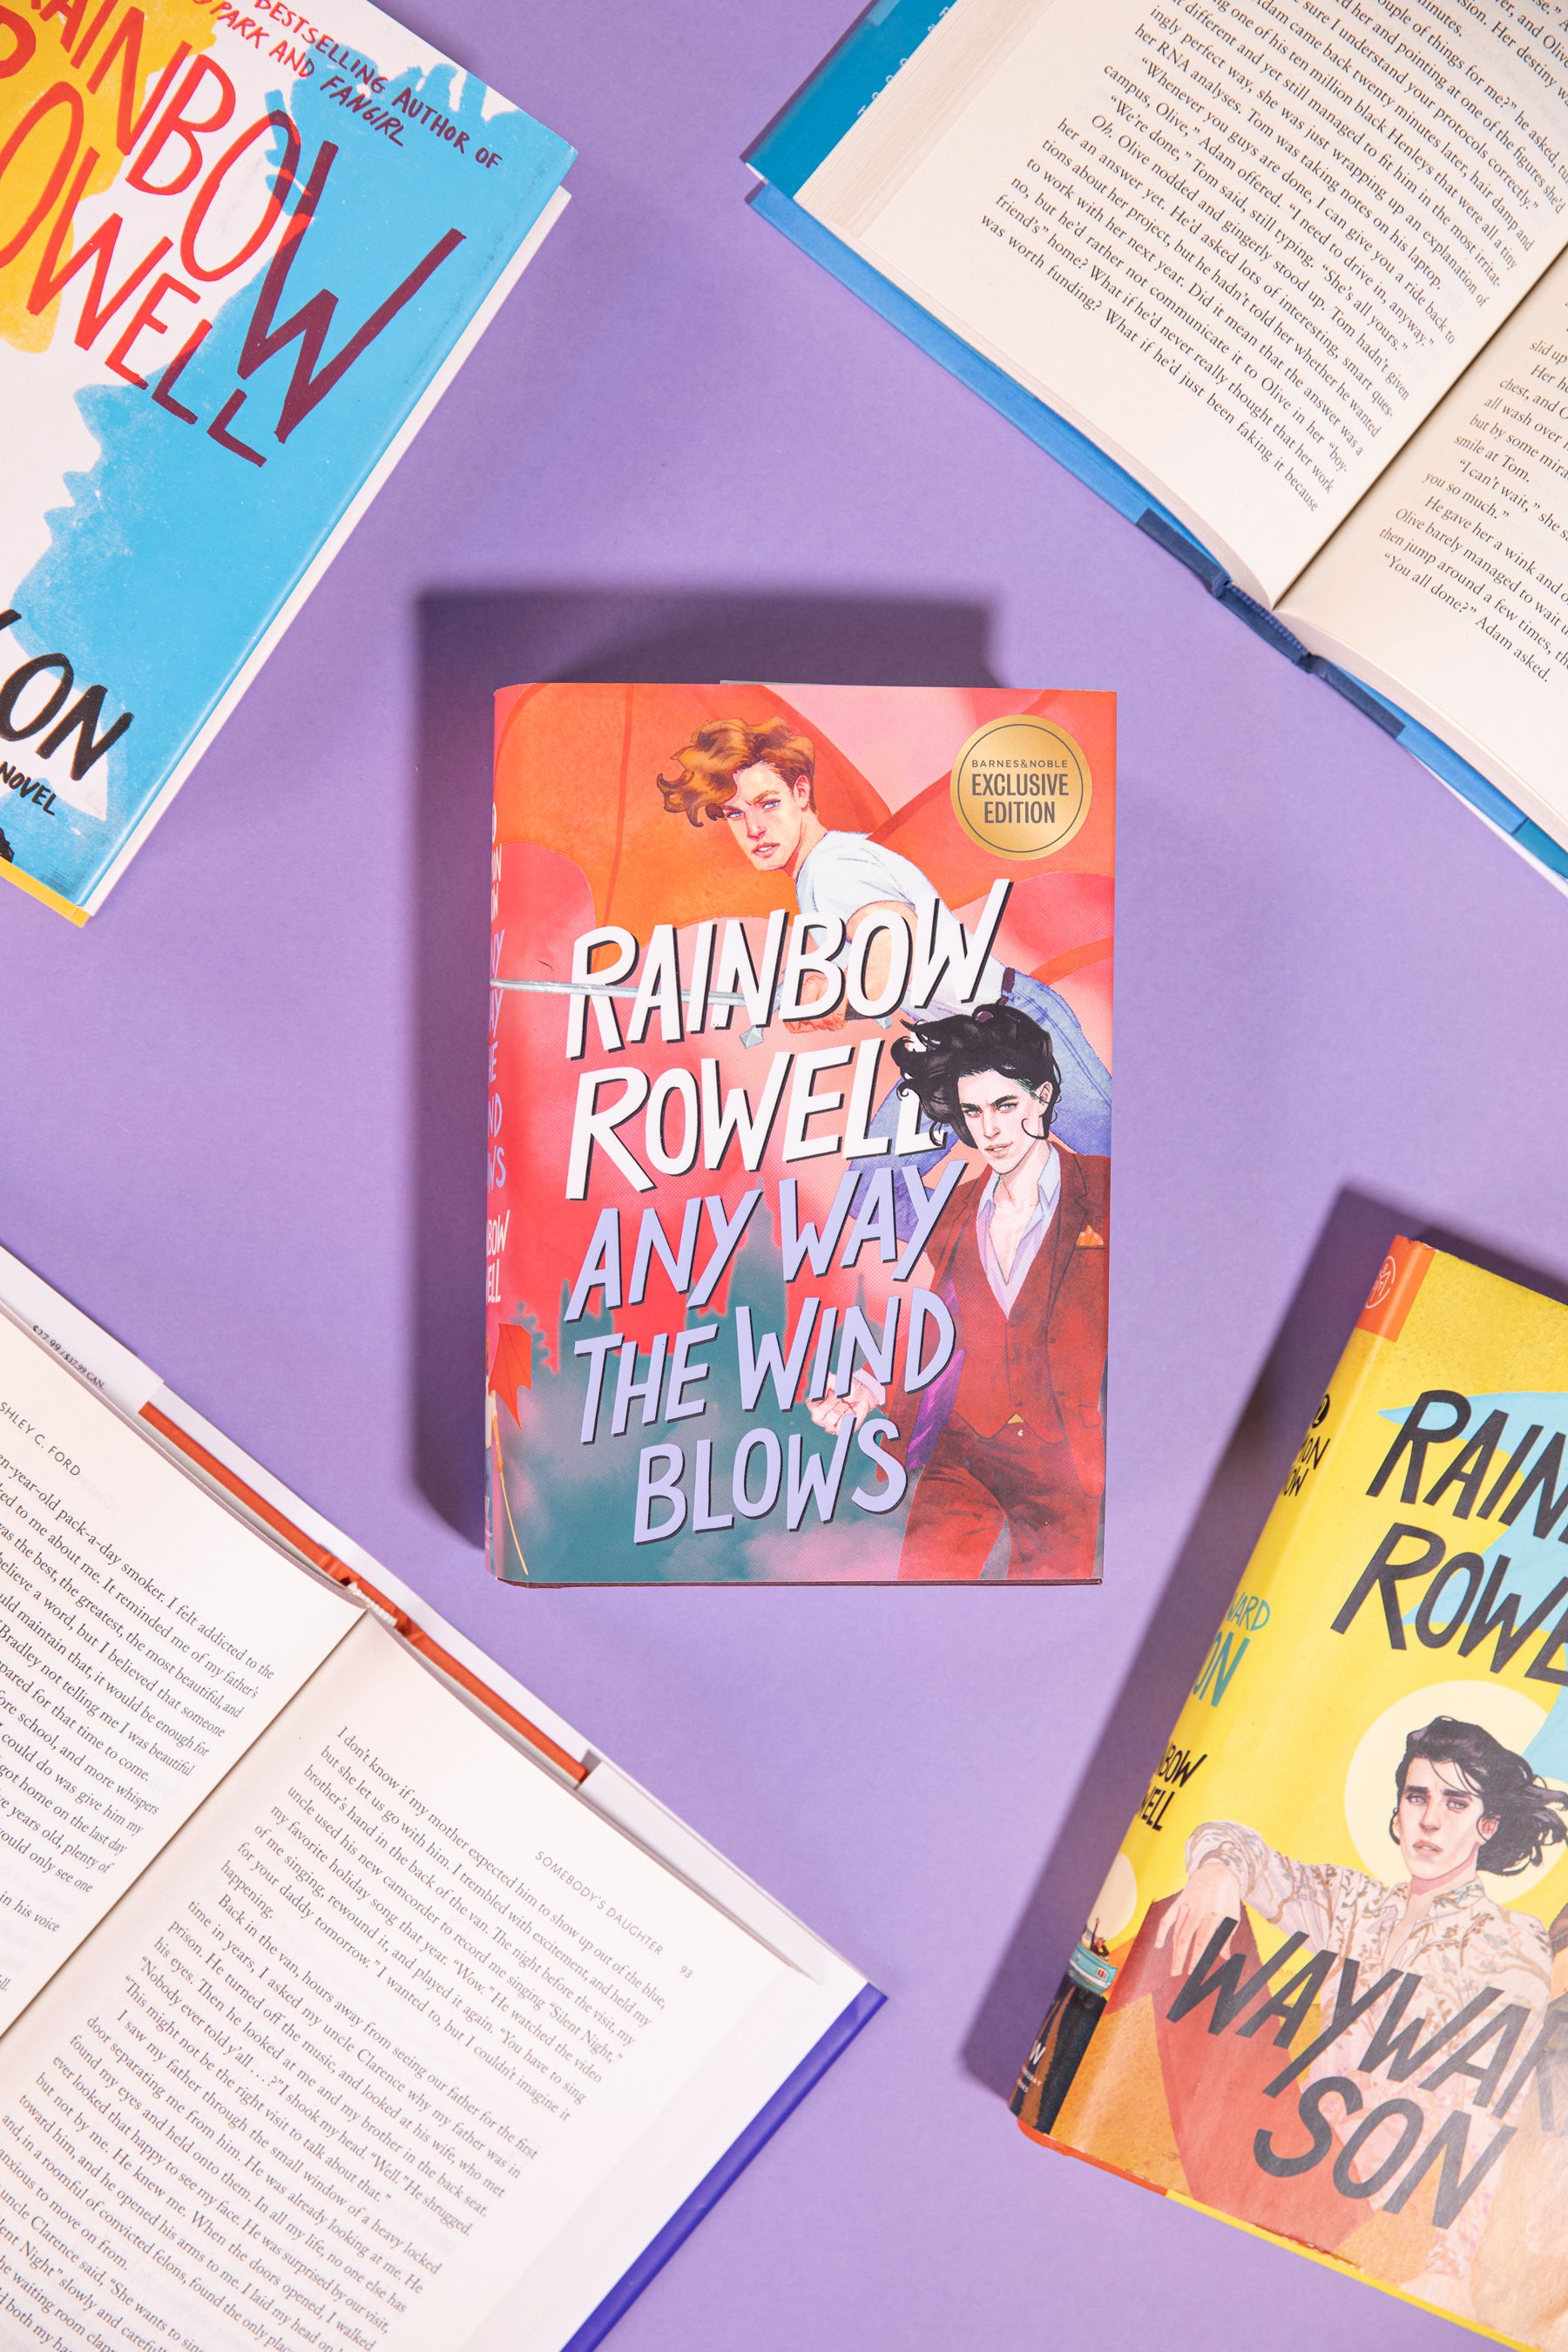 Any Way the Wind Blows, Simon Snow trilogy by Rainbow Rowell